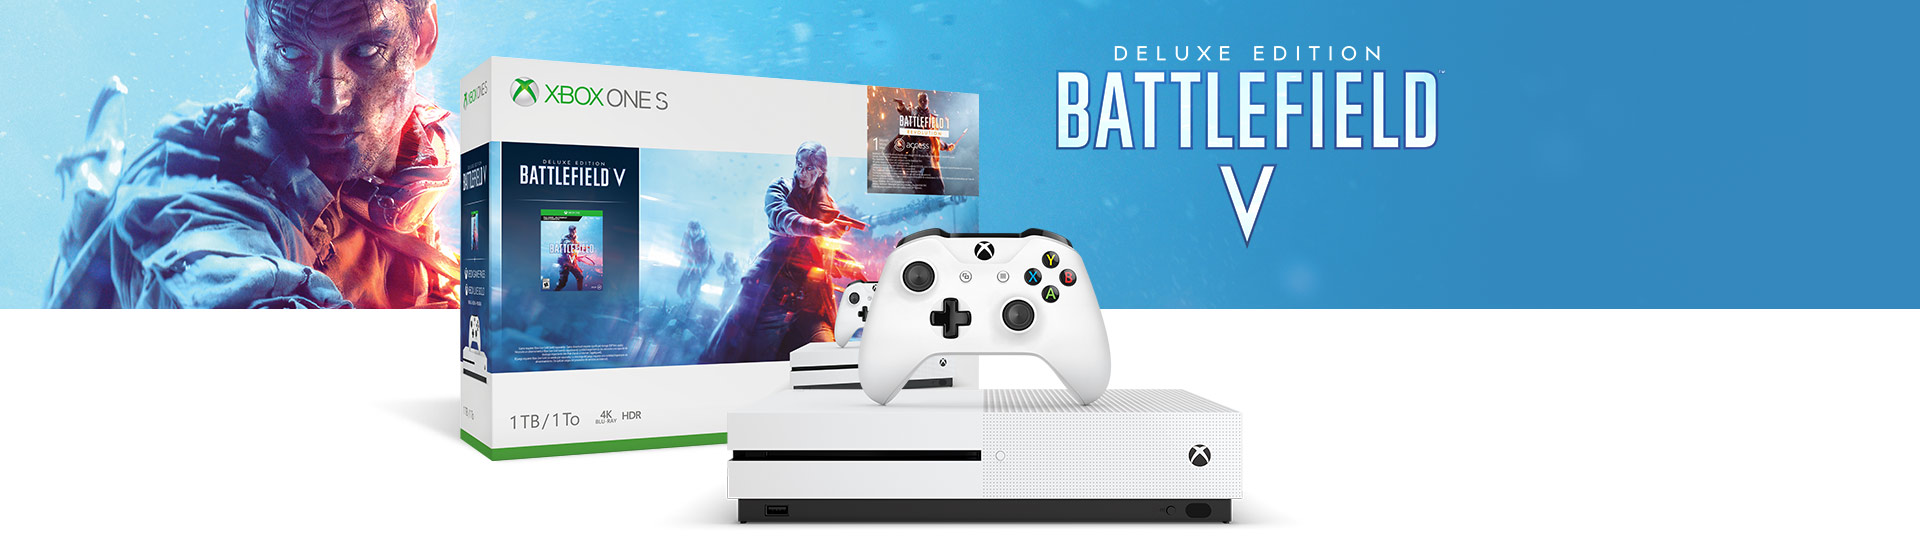 Xbox One S and Controller next to the Xbox One S Battlefield V 1 terabyte product box